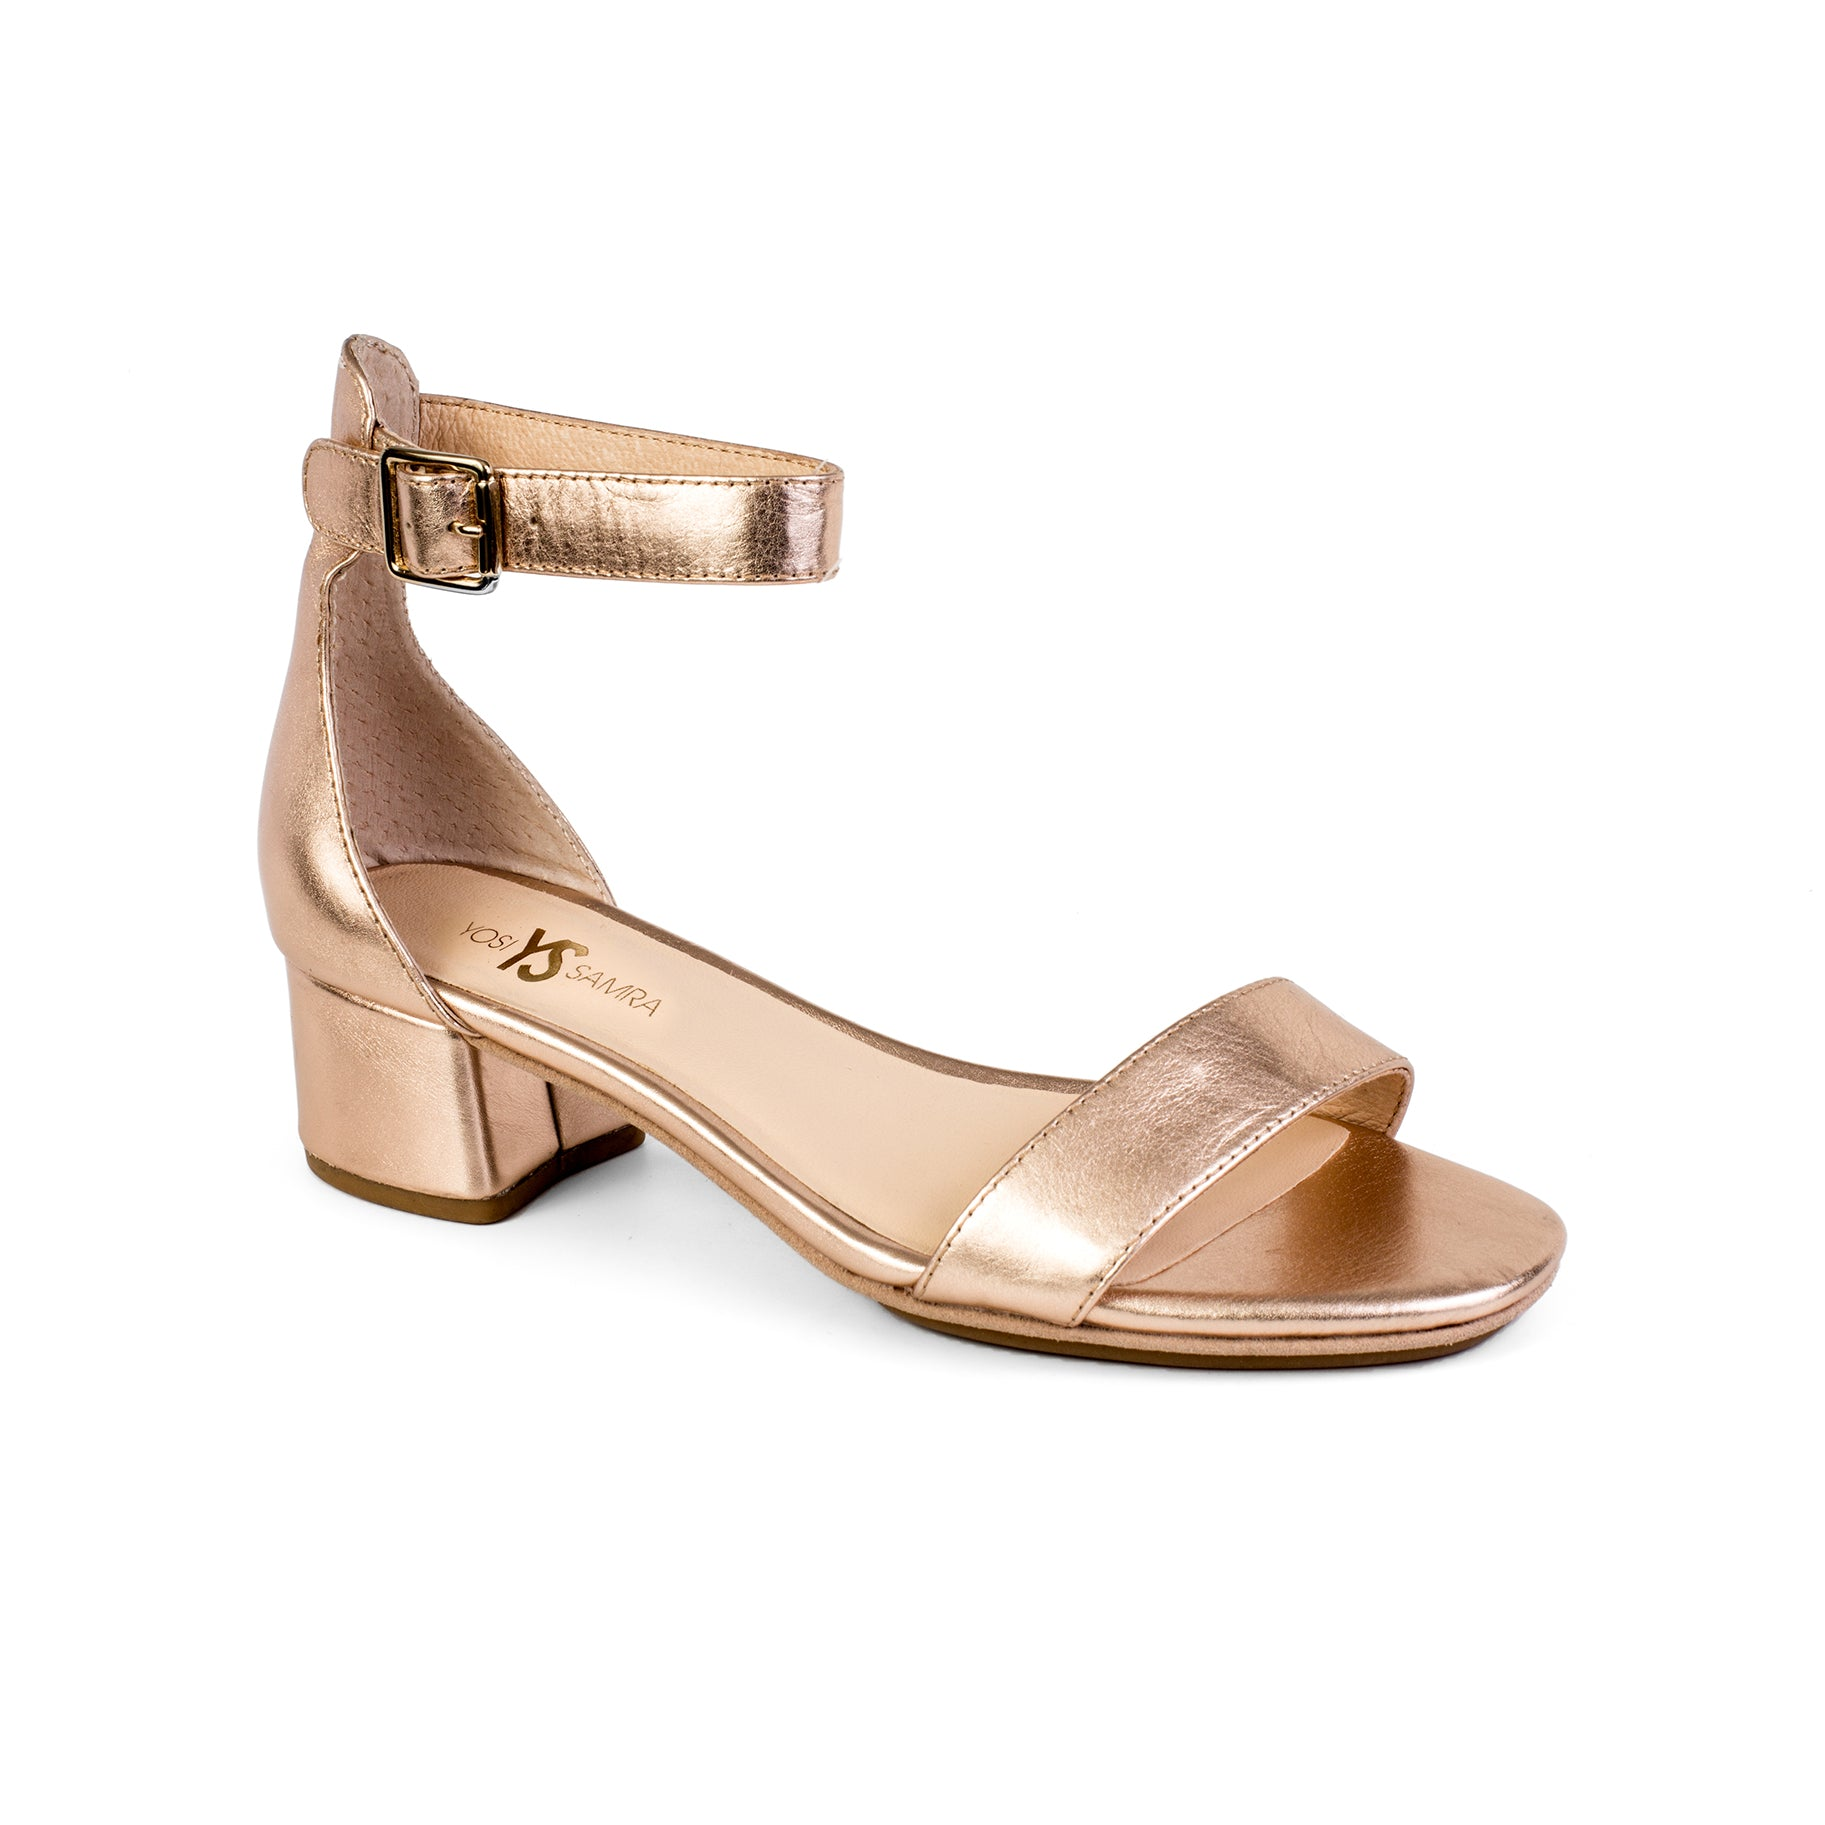 yosi samra rose gold metallic leather heel